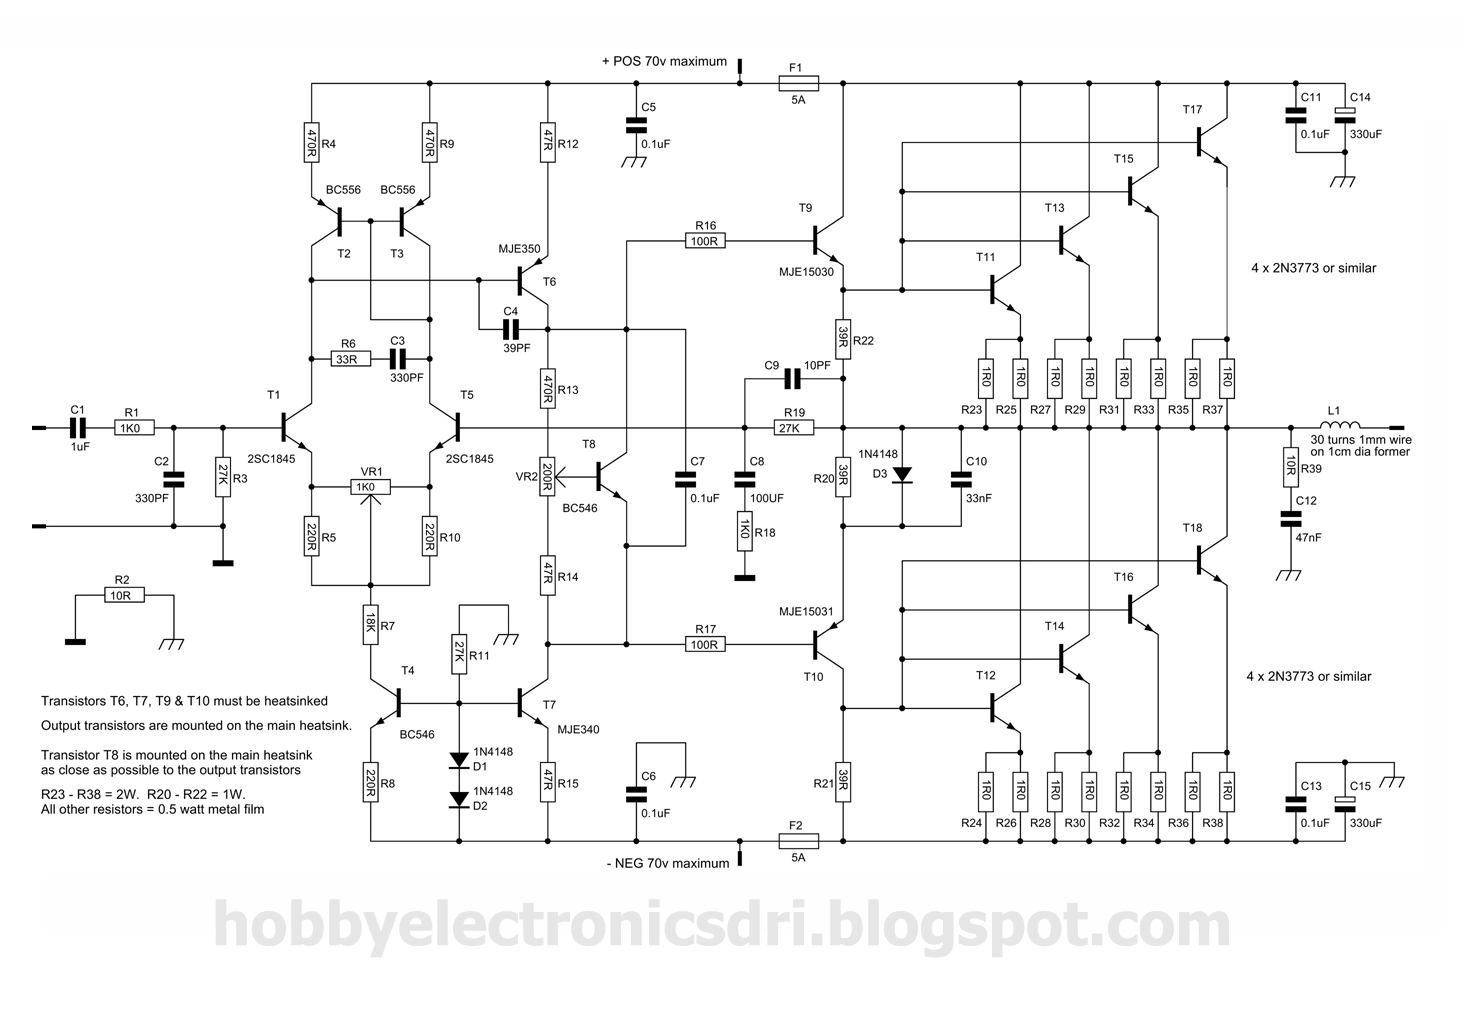 2000w power amplifier circuit diagram 7 pole trailer plug wiring 300w with 2n773 electronic